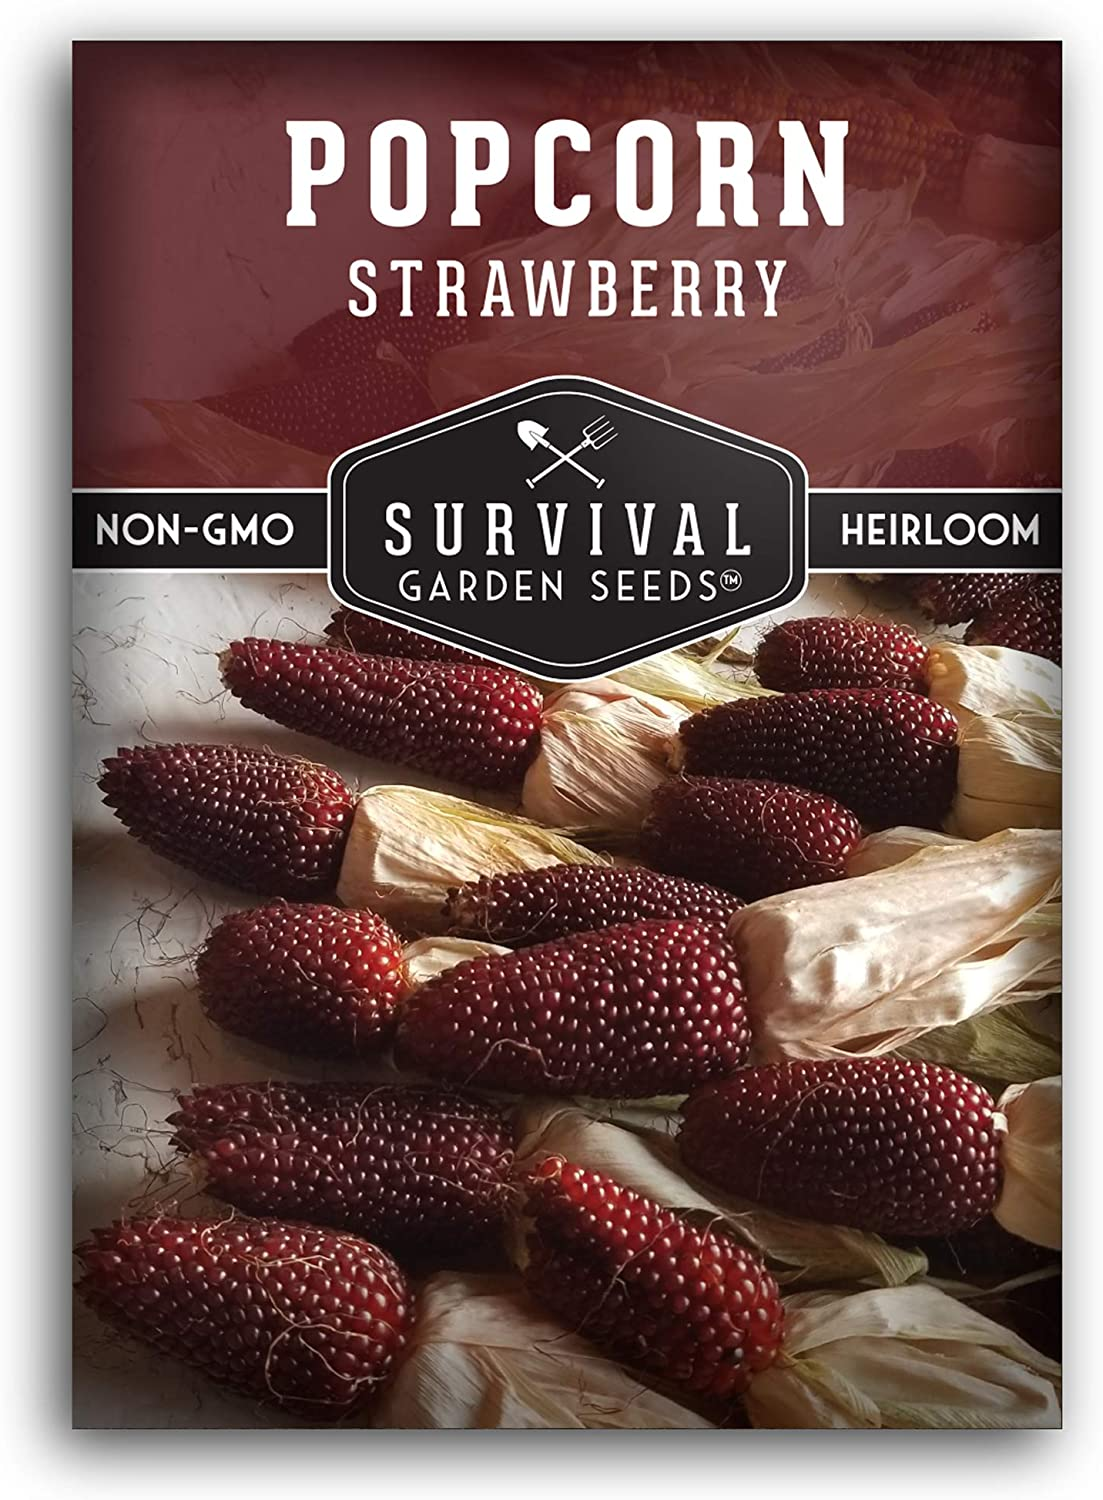 Survival Garden Seeds - Strawberry Popcorn Seed for Planting - Packet with Instructions to Plant and Grow in Your Home Vegetable Garden - Non-GMO Heirloom Variety